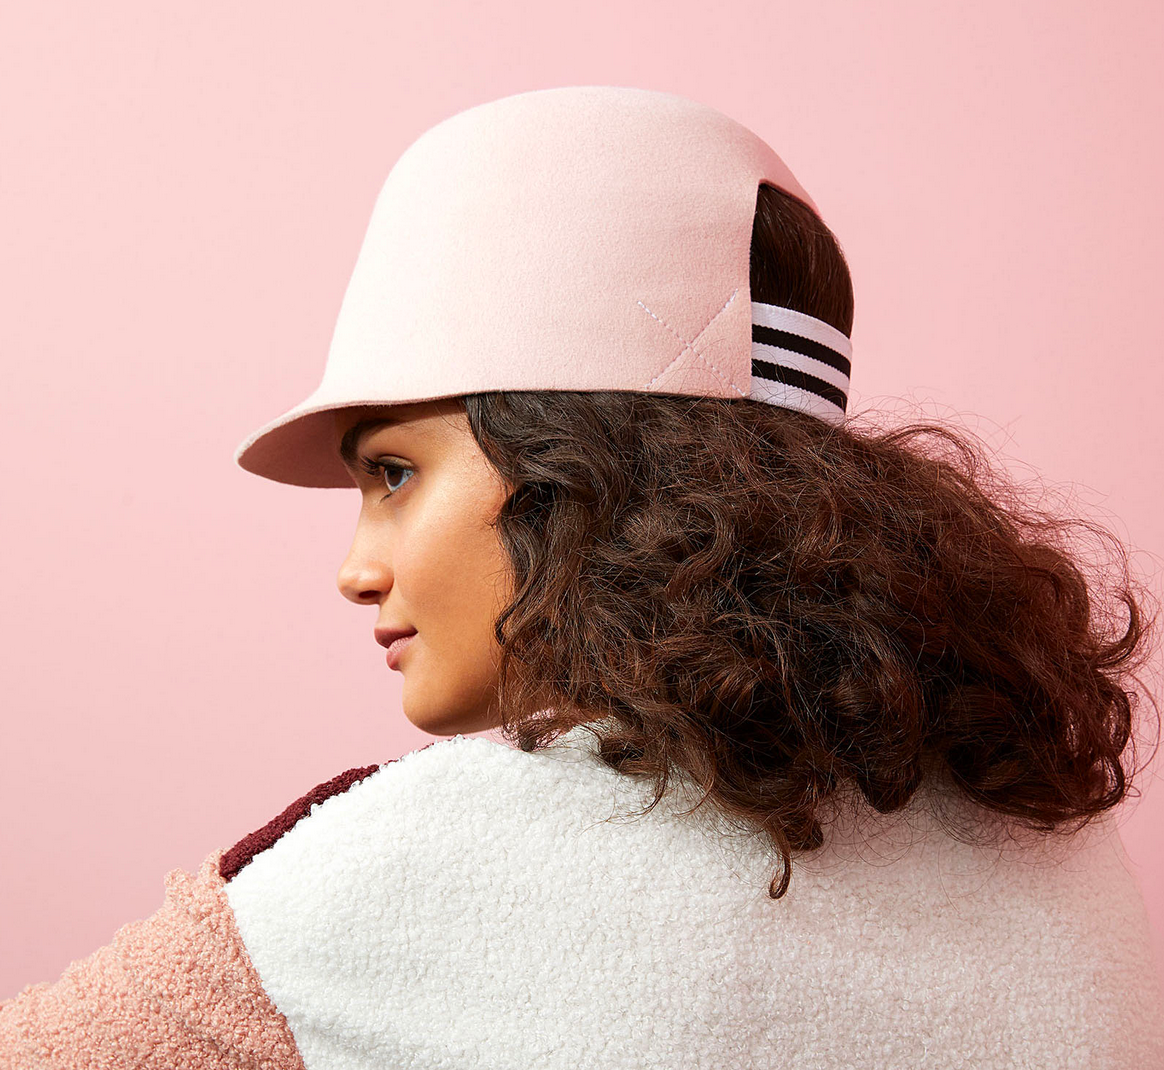 Curly hair model wearing biggie hat from croppedhat company @croppedhat